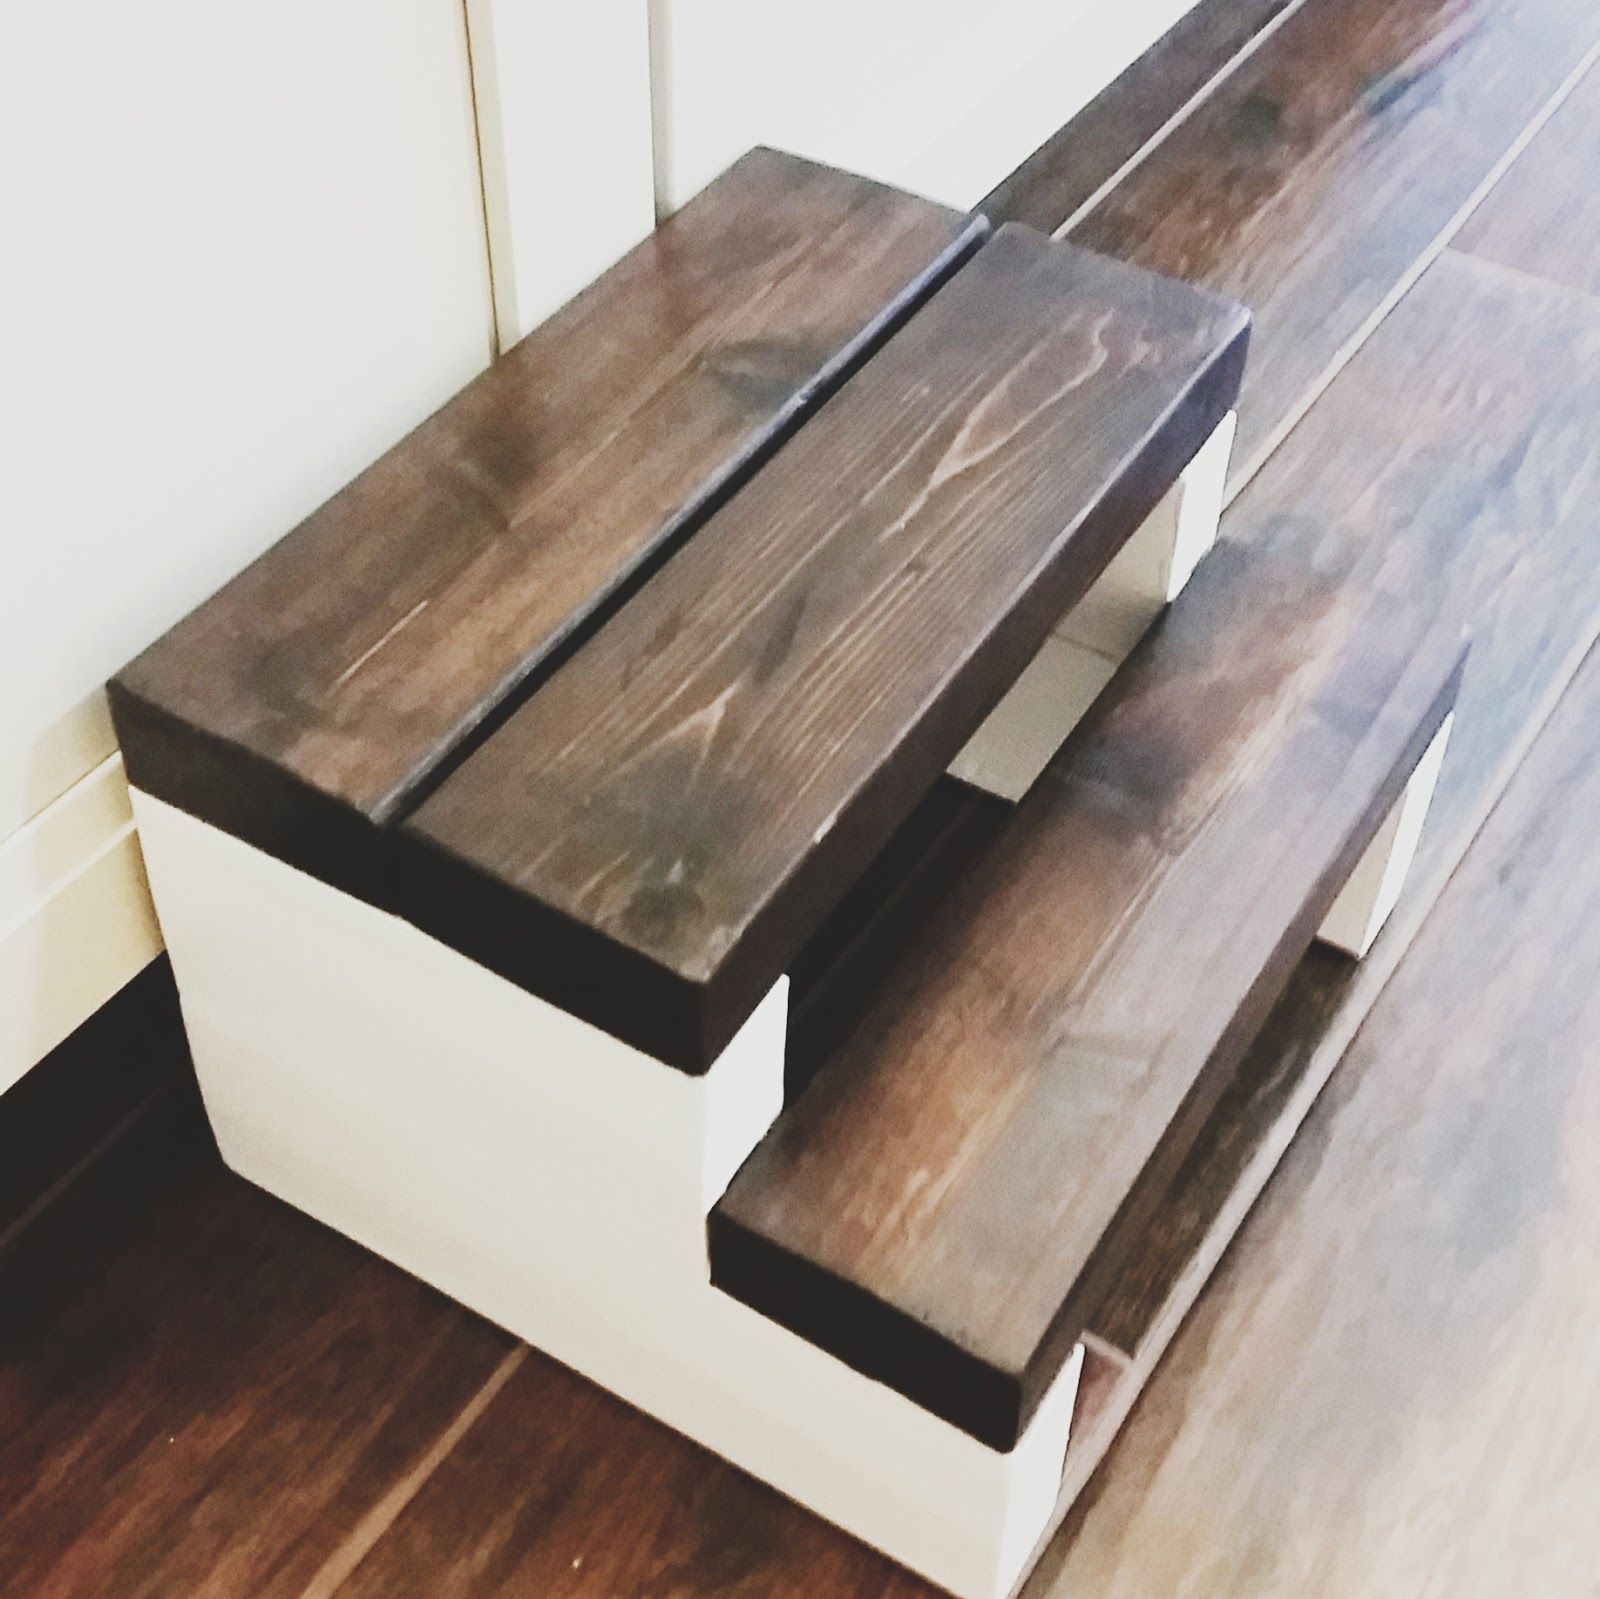 Wooden Steps The Heart Comes Home Step Stool Made With One 2x4 So